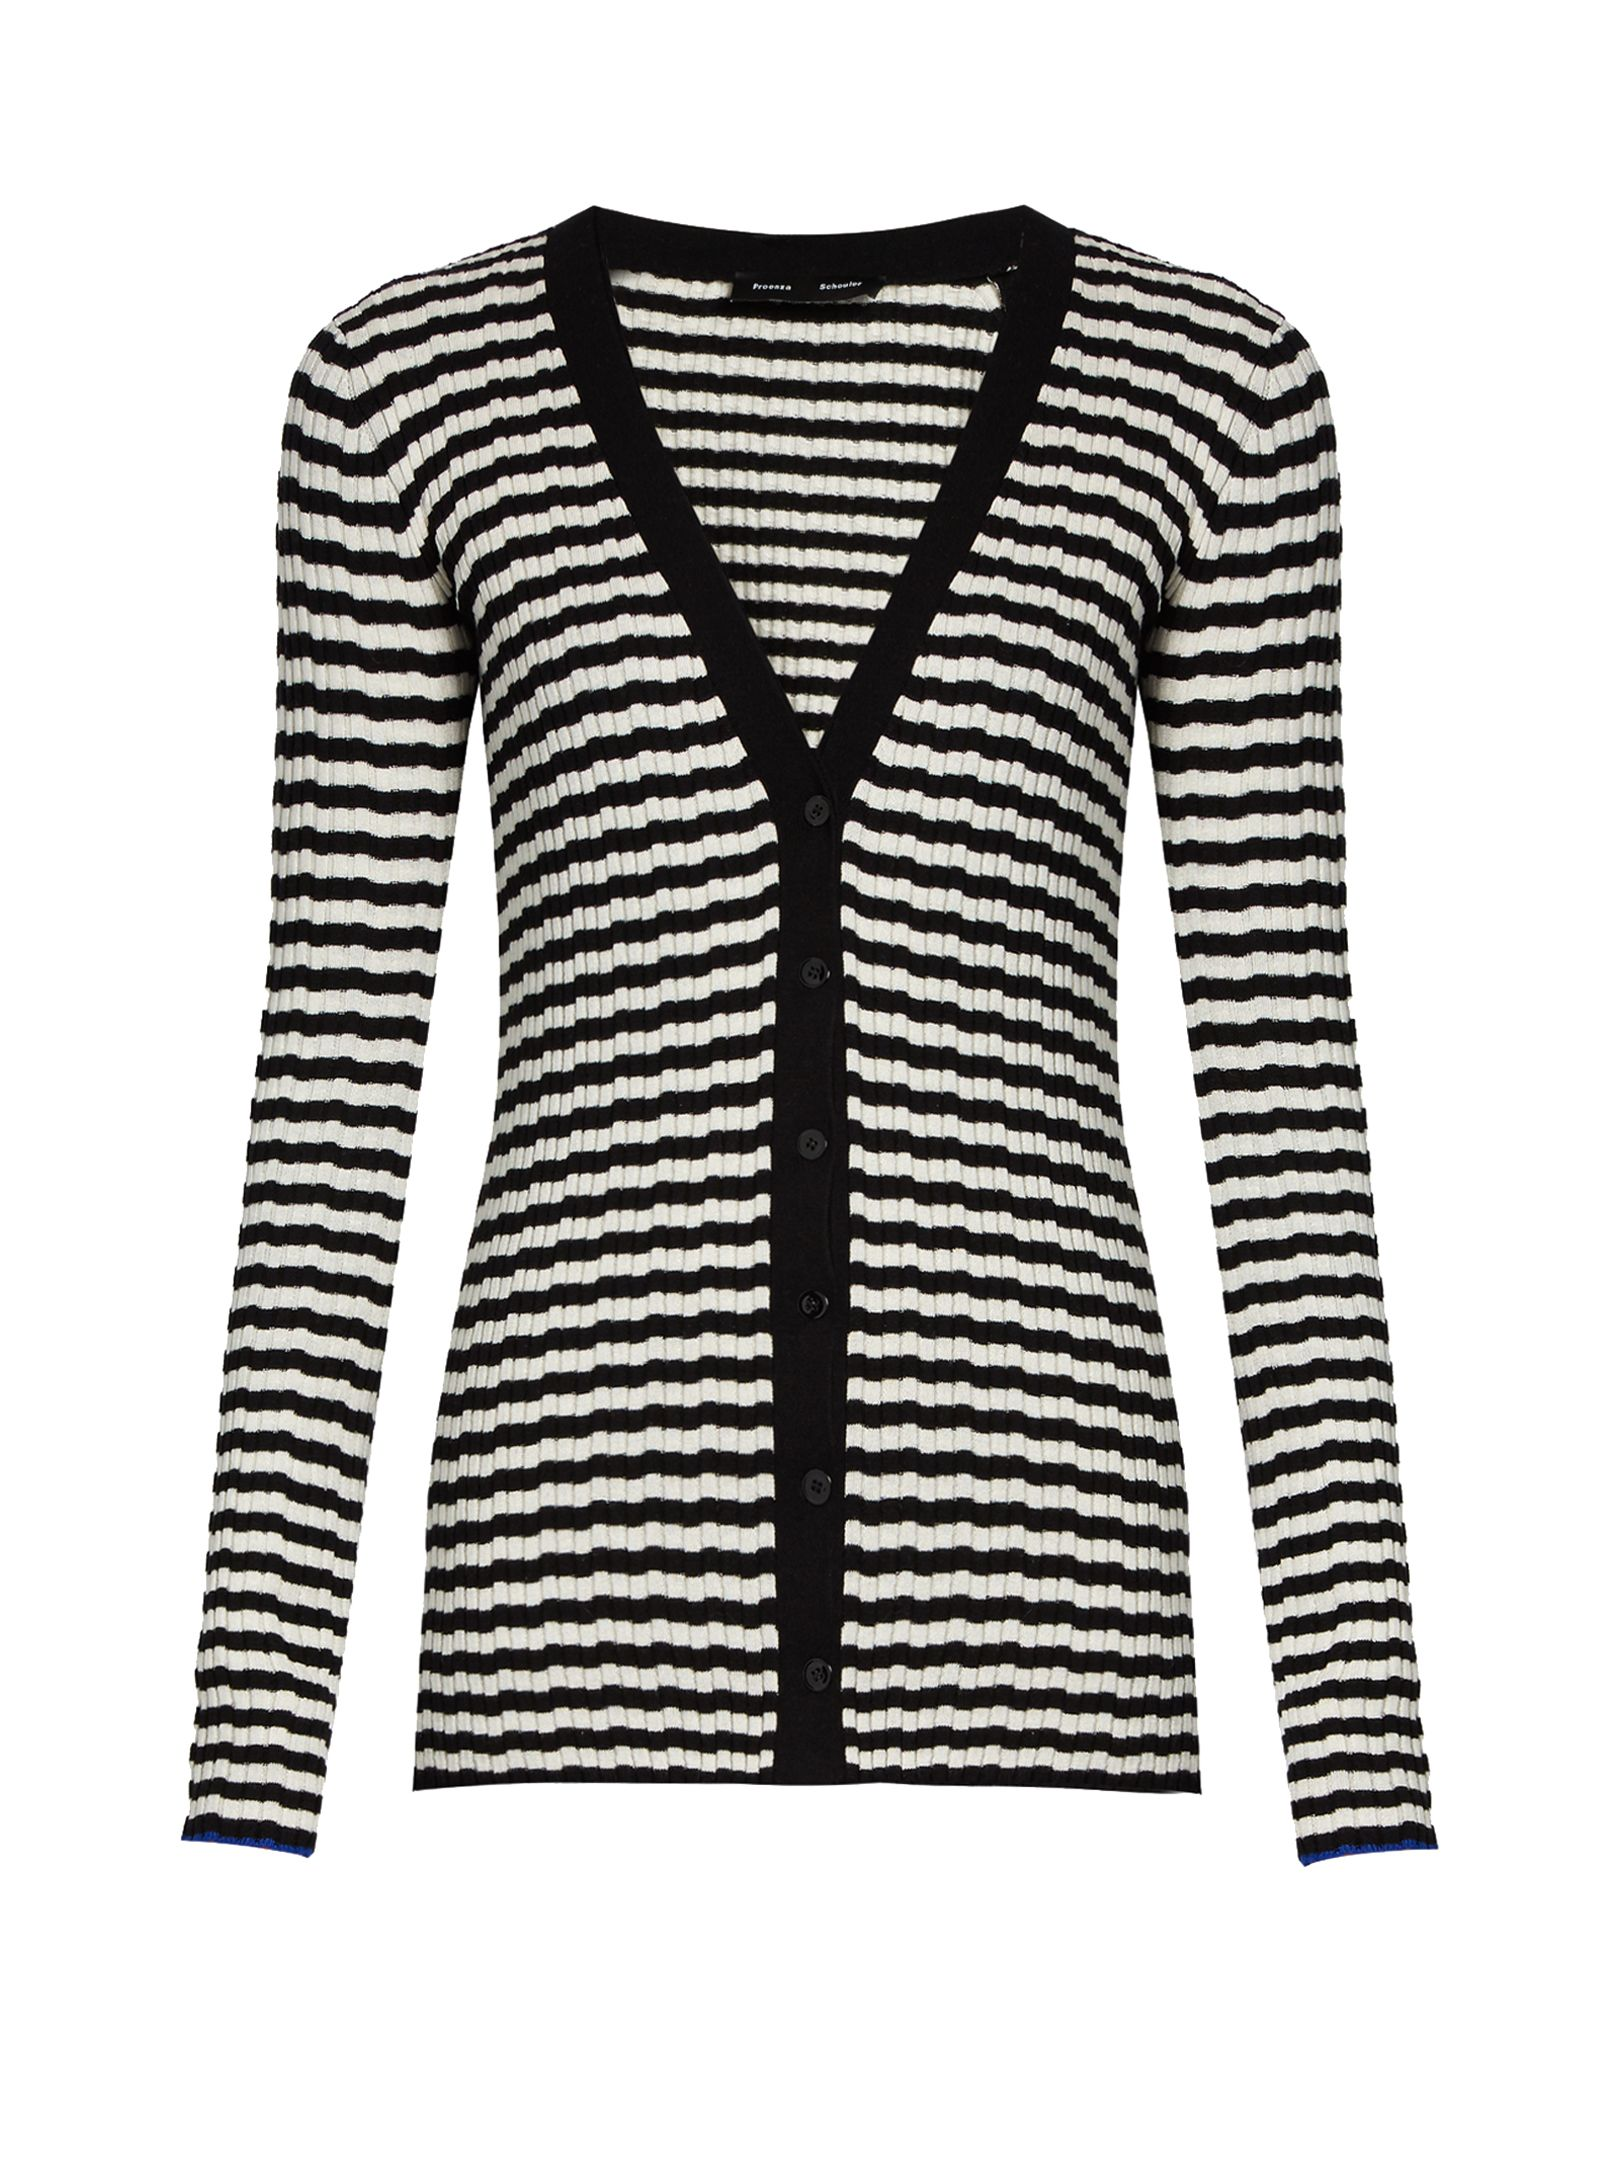 Largest Supplier Outlet Eastbay Silk and cashmere-blend sweater Proenza Schouler Sale Ebay Clearance Fast Delivery Cheap Lowest Price UJ4UTamdN